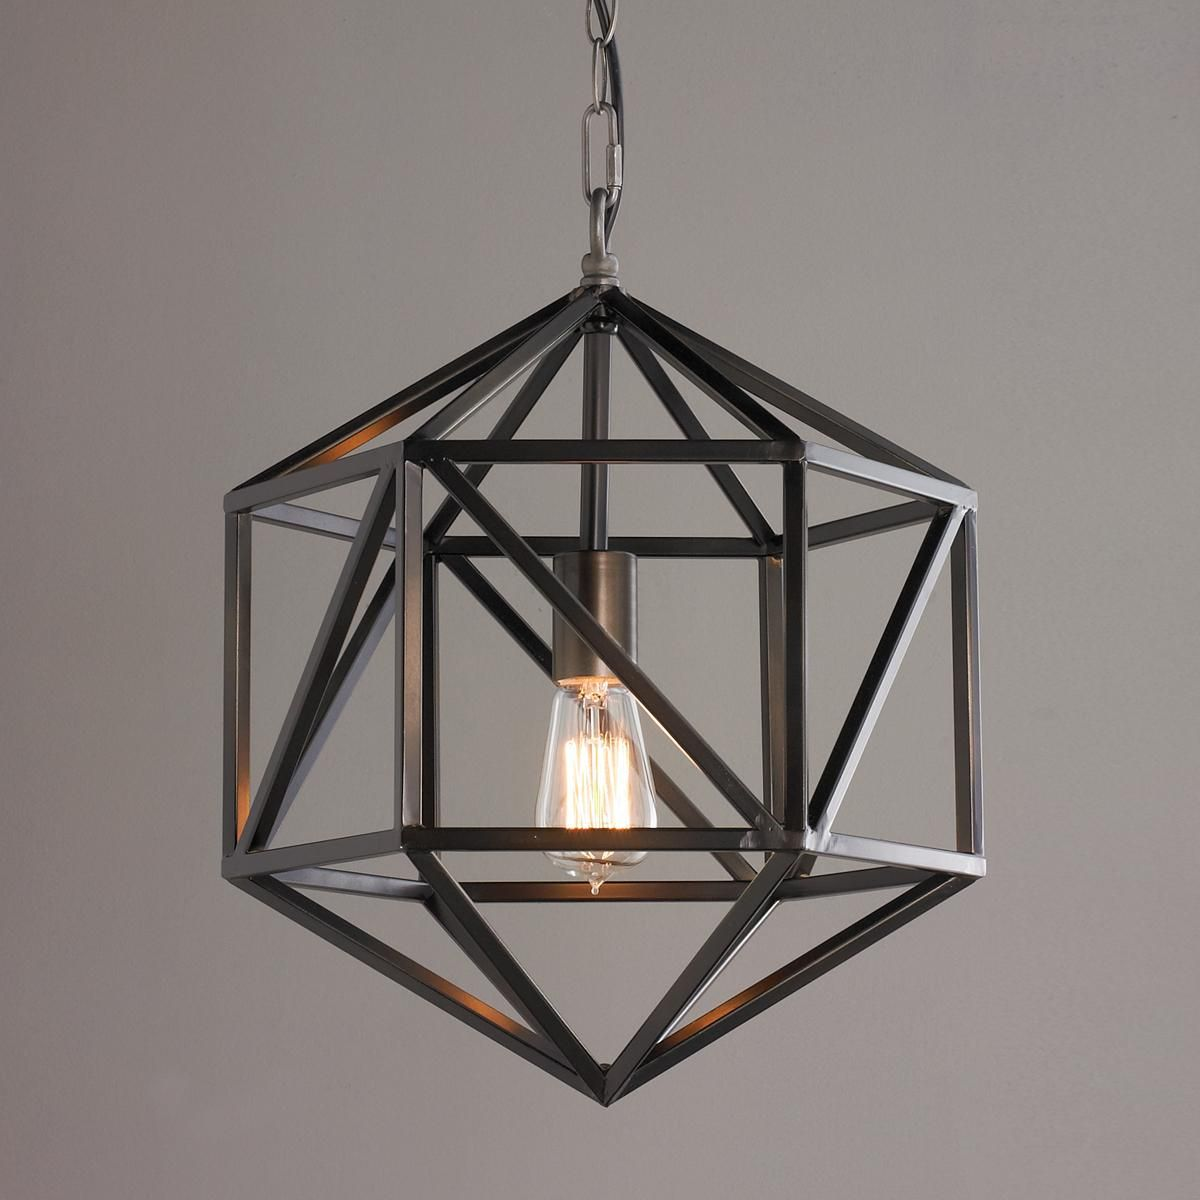 Prism cage pendant light pendant lighting open concept for Contemporary chandeliers and pendants